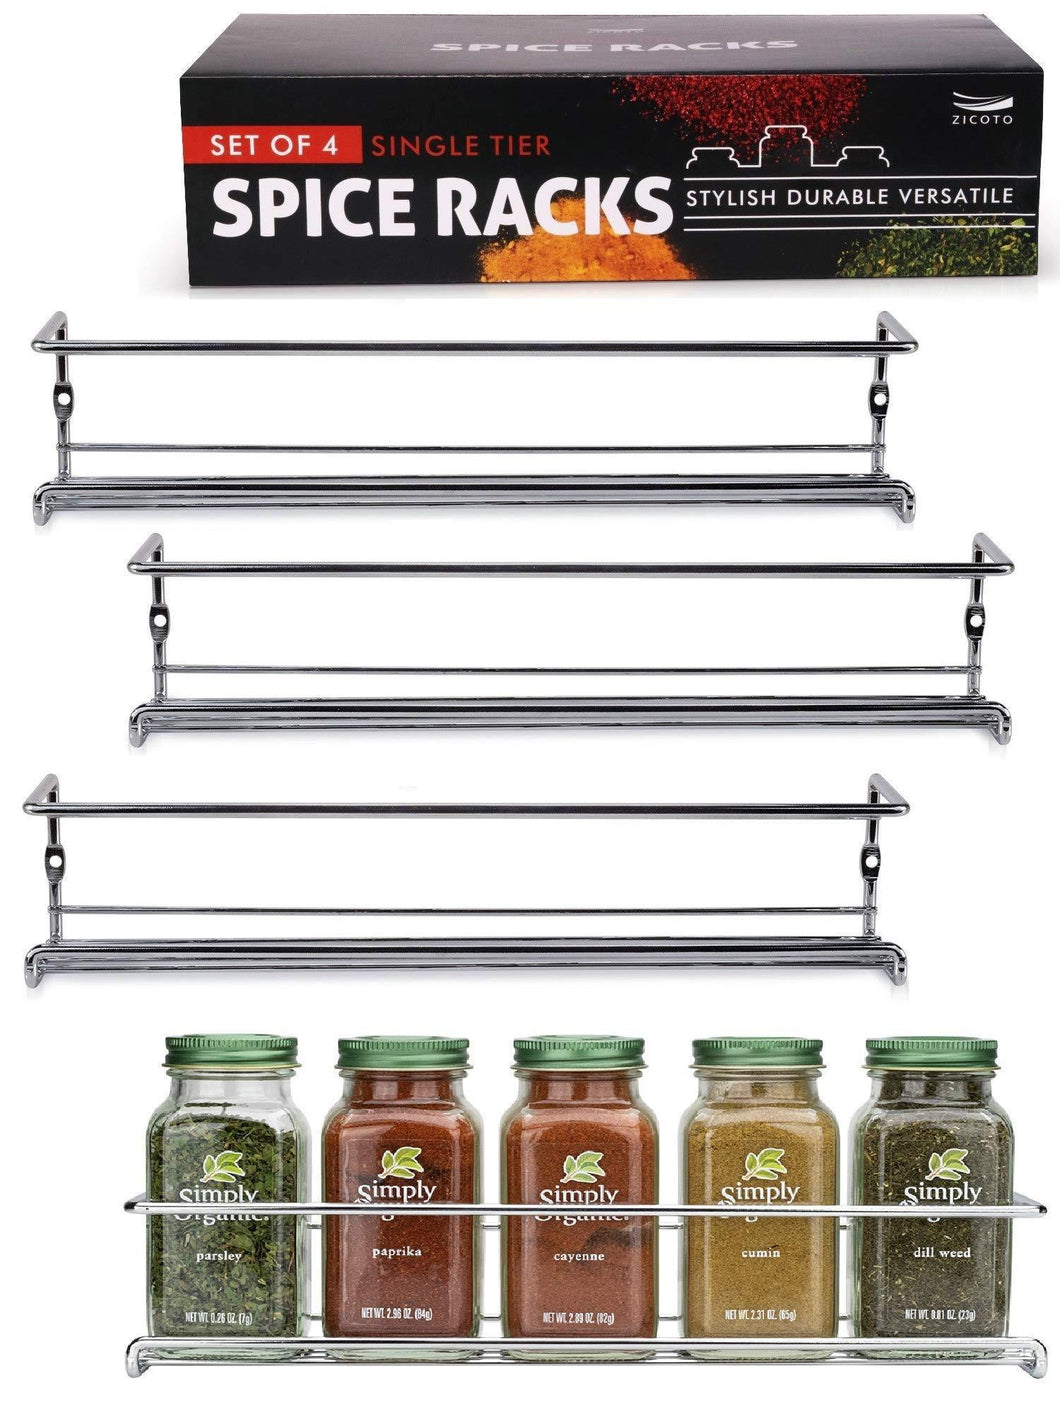 Best Gorgeous Spice Rack Organizer for Cabinets or Wall Mounts - Space Saving Set of 4 Hanging Racks - Perfect Seasoning Organizer For Your Kitchen Cabinet, Cupboard or Pantry Door